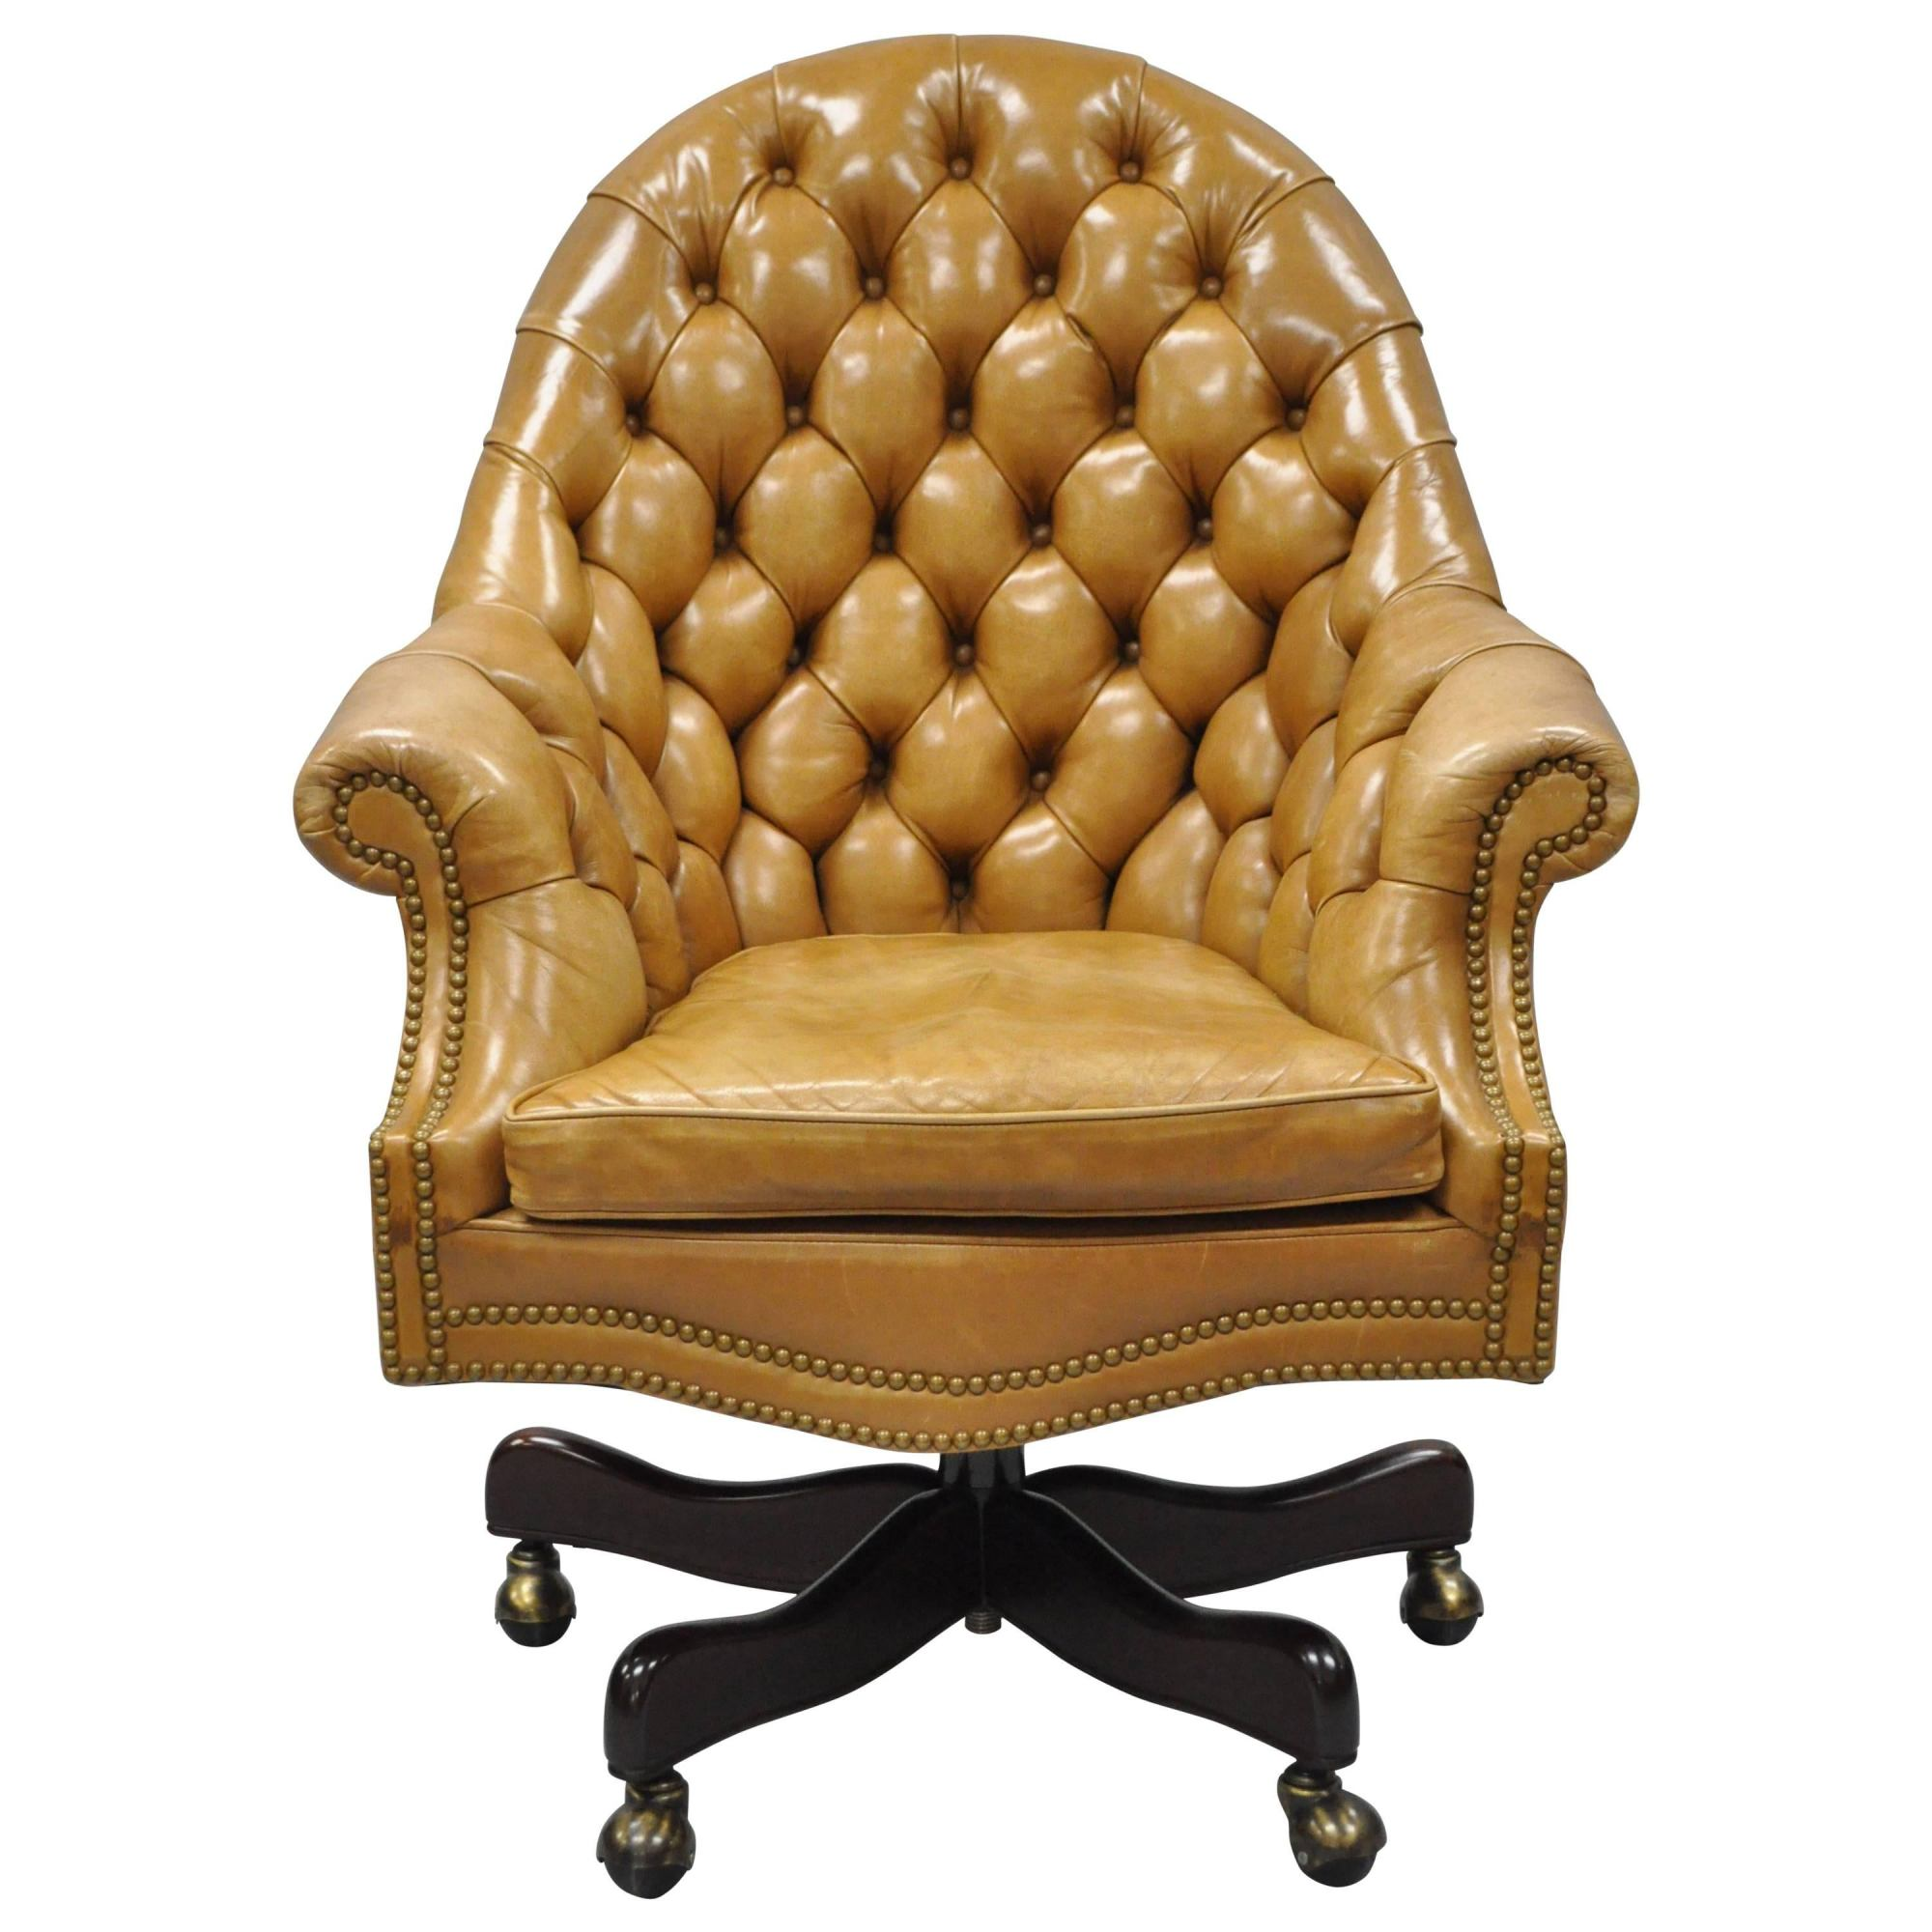 hight resolution of 20th c cabot wrenn tan leather english chesterfield executive office desk chair for sale at 1stdibs